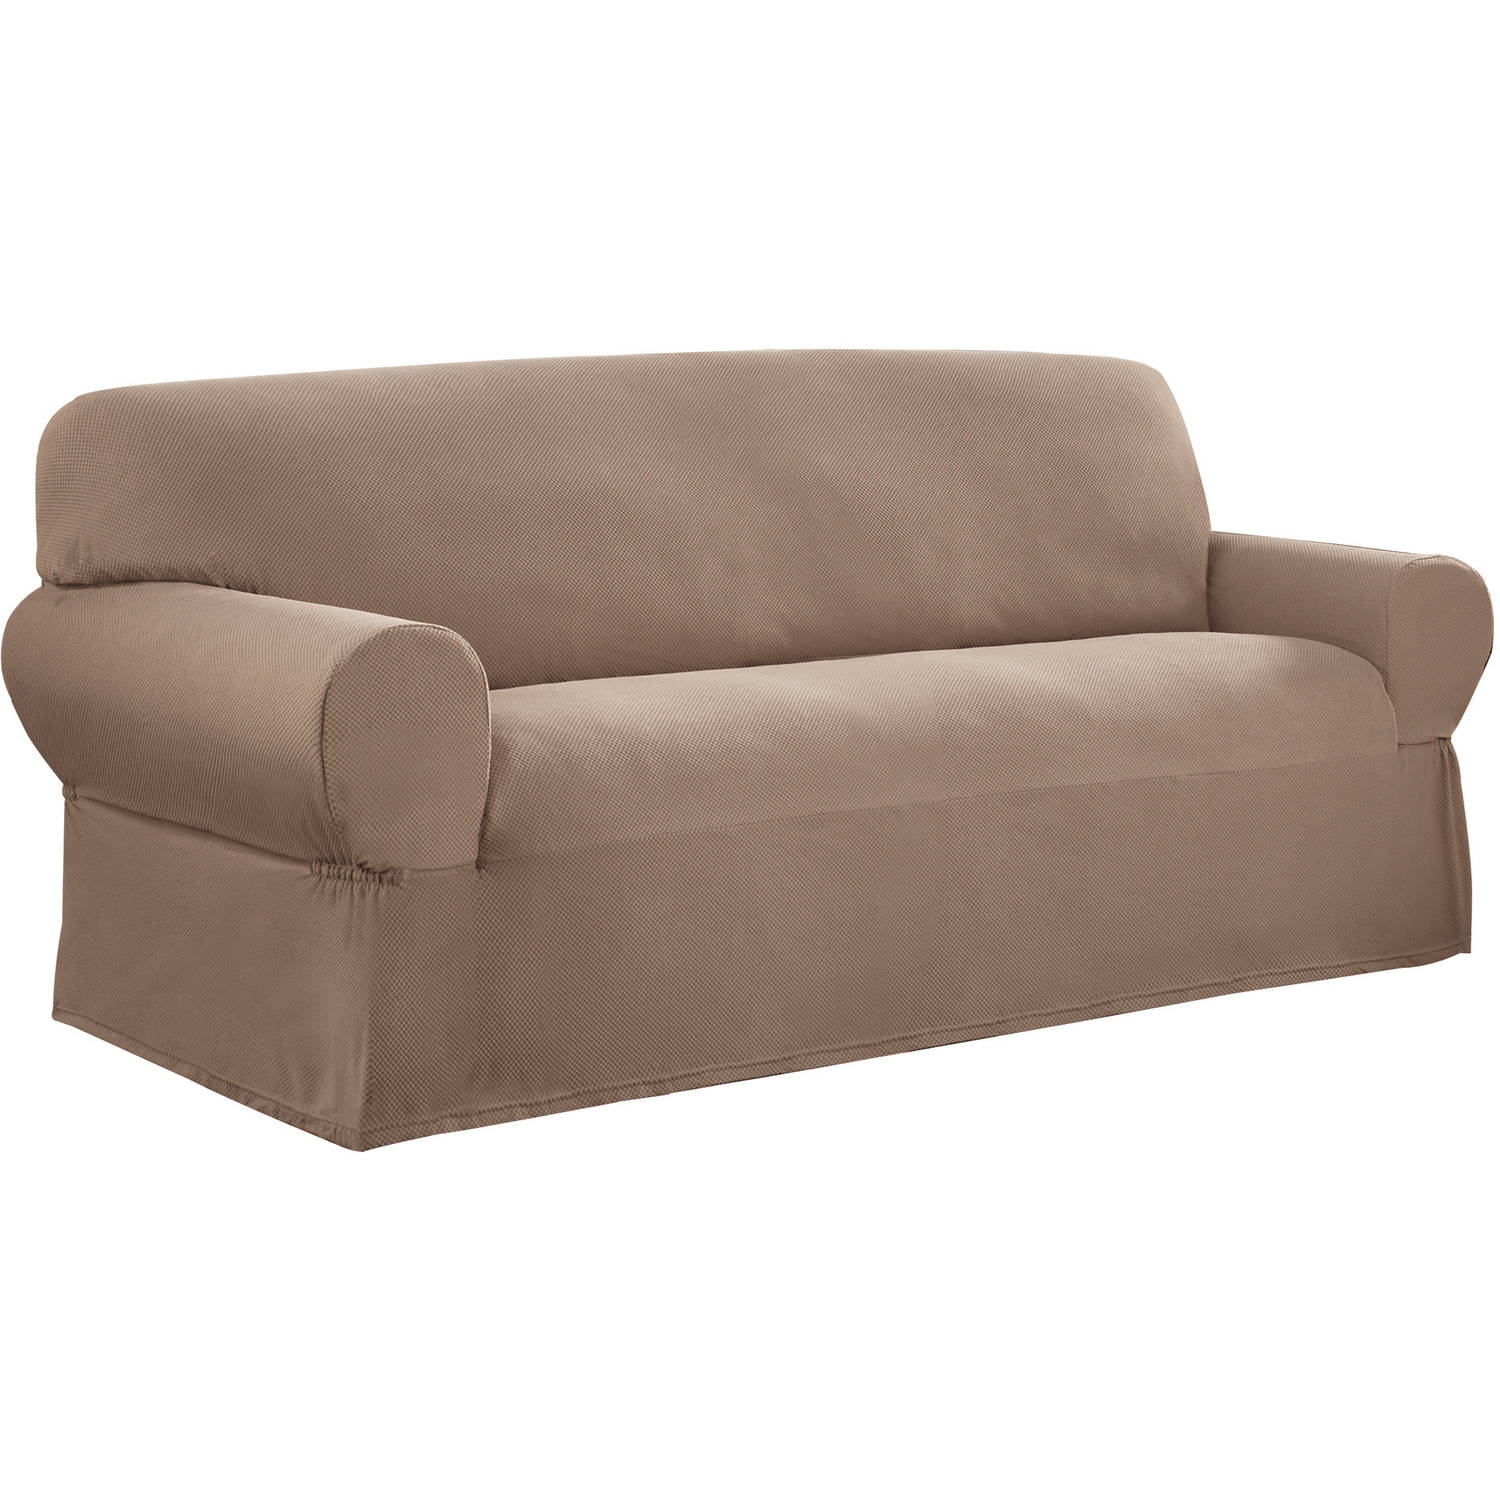 Mainstays 1Piece Stretch Fabric Sofa Slipcover Walmartcom